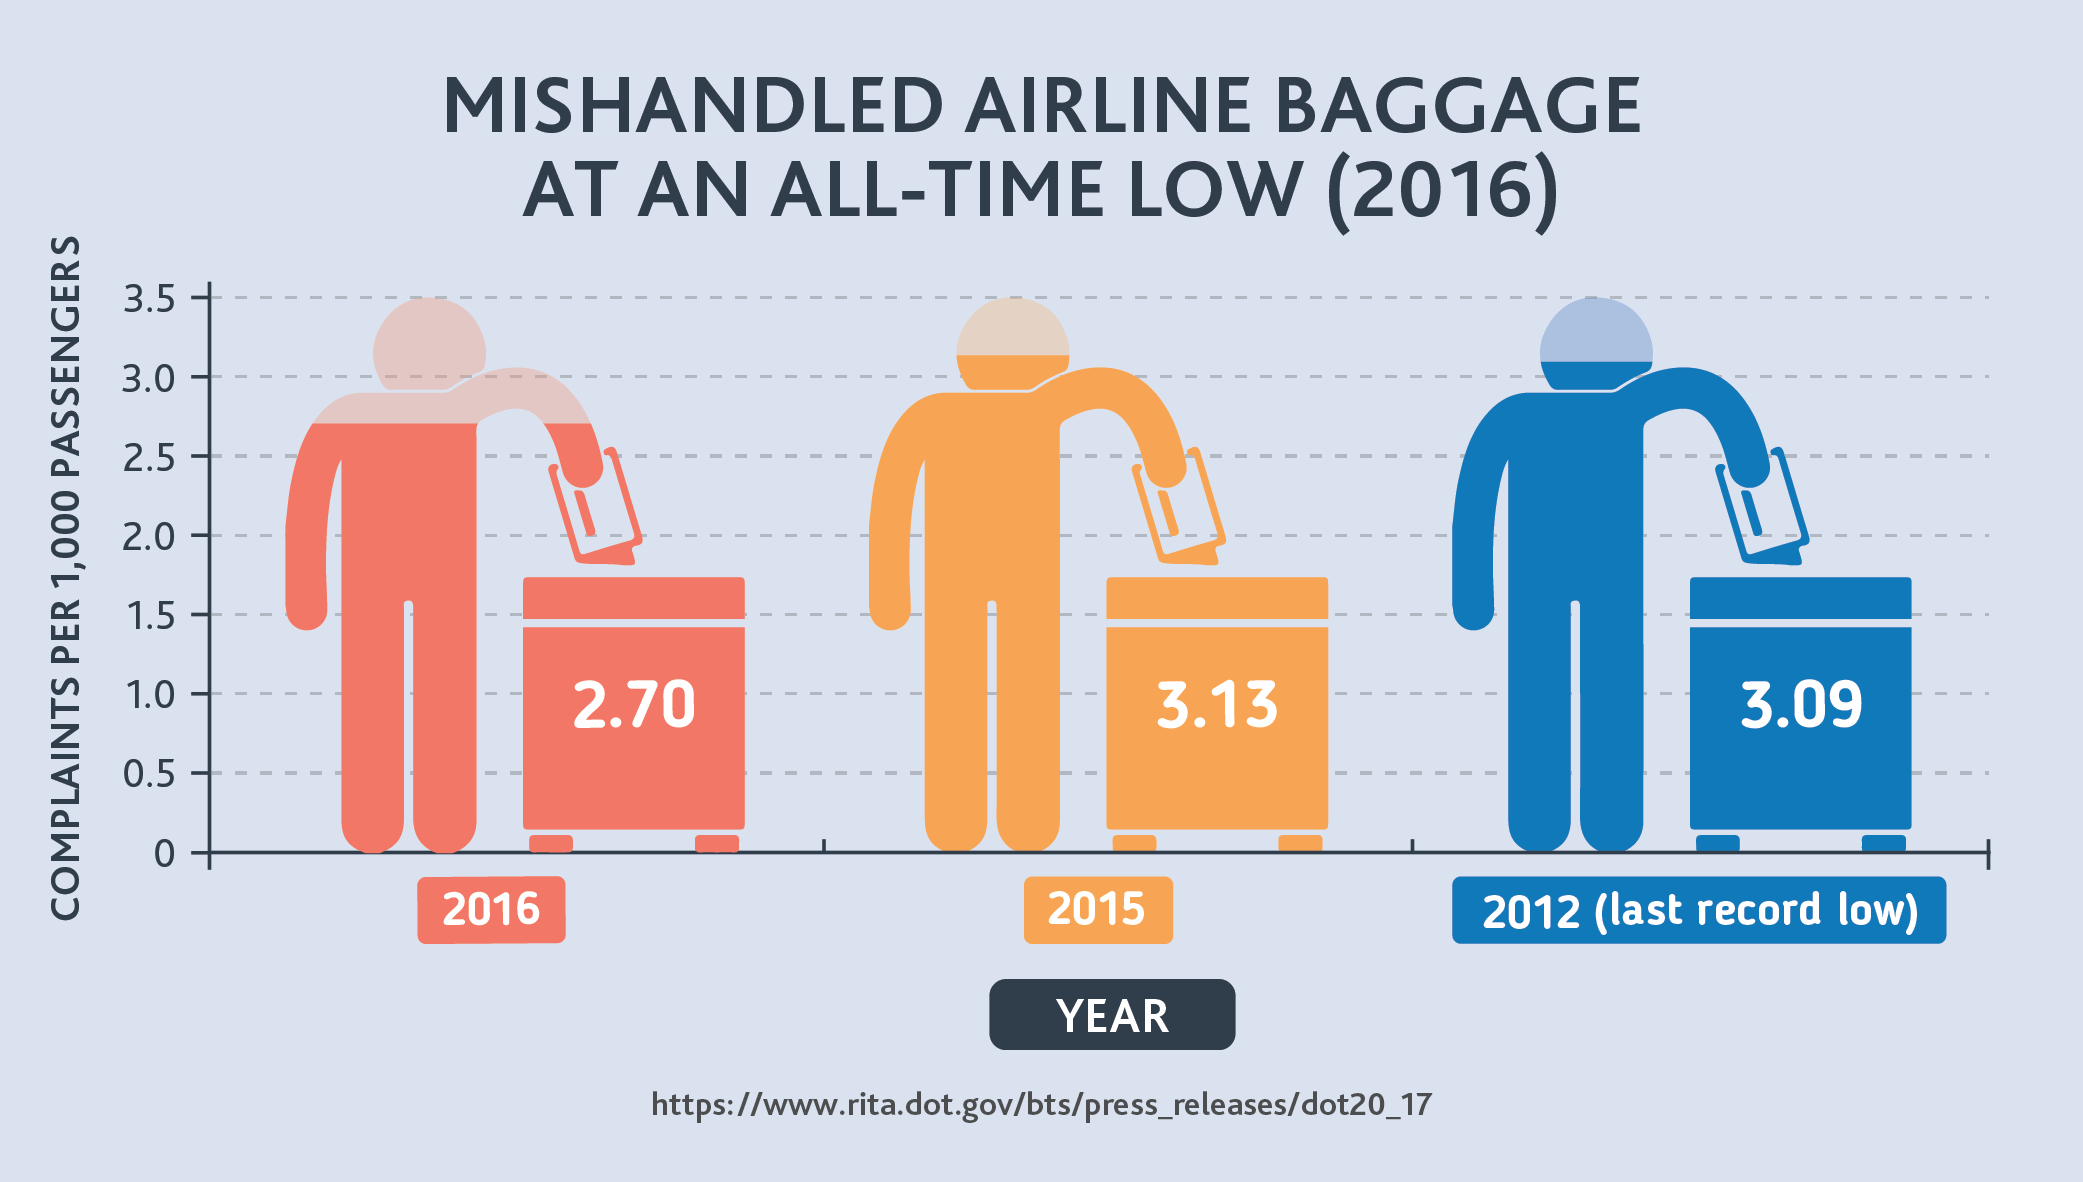 Mishandled Airline Baggage at an All-time Low (2016)